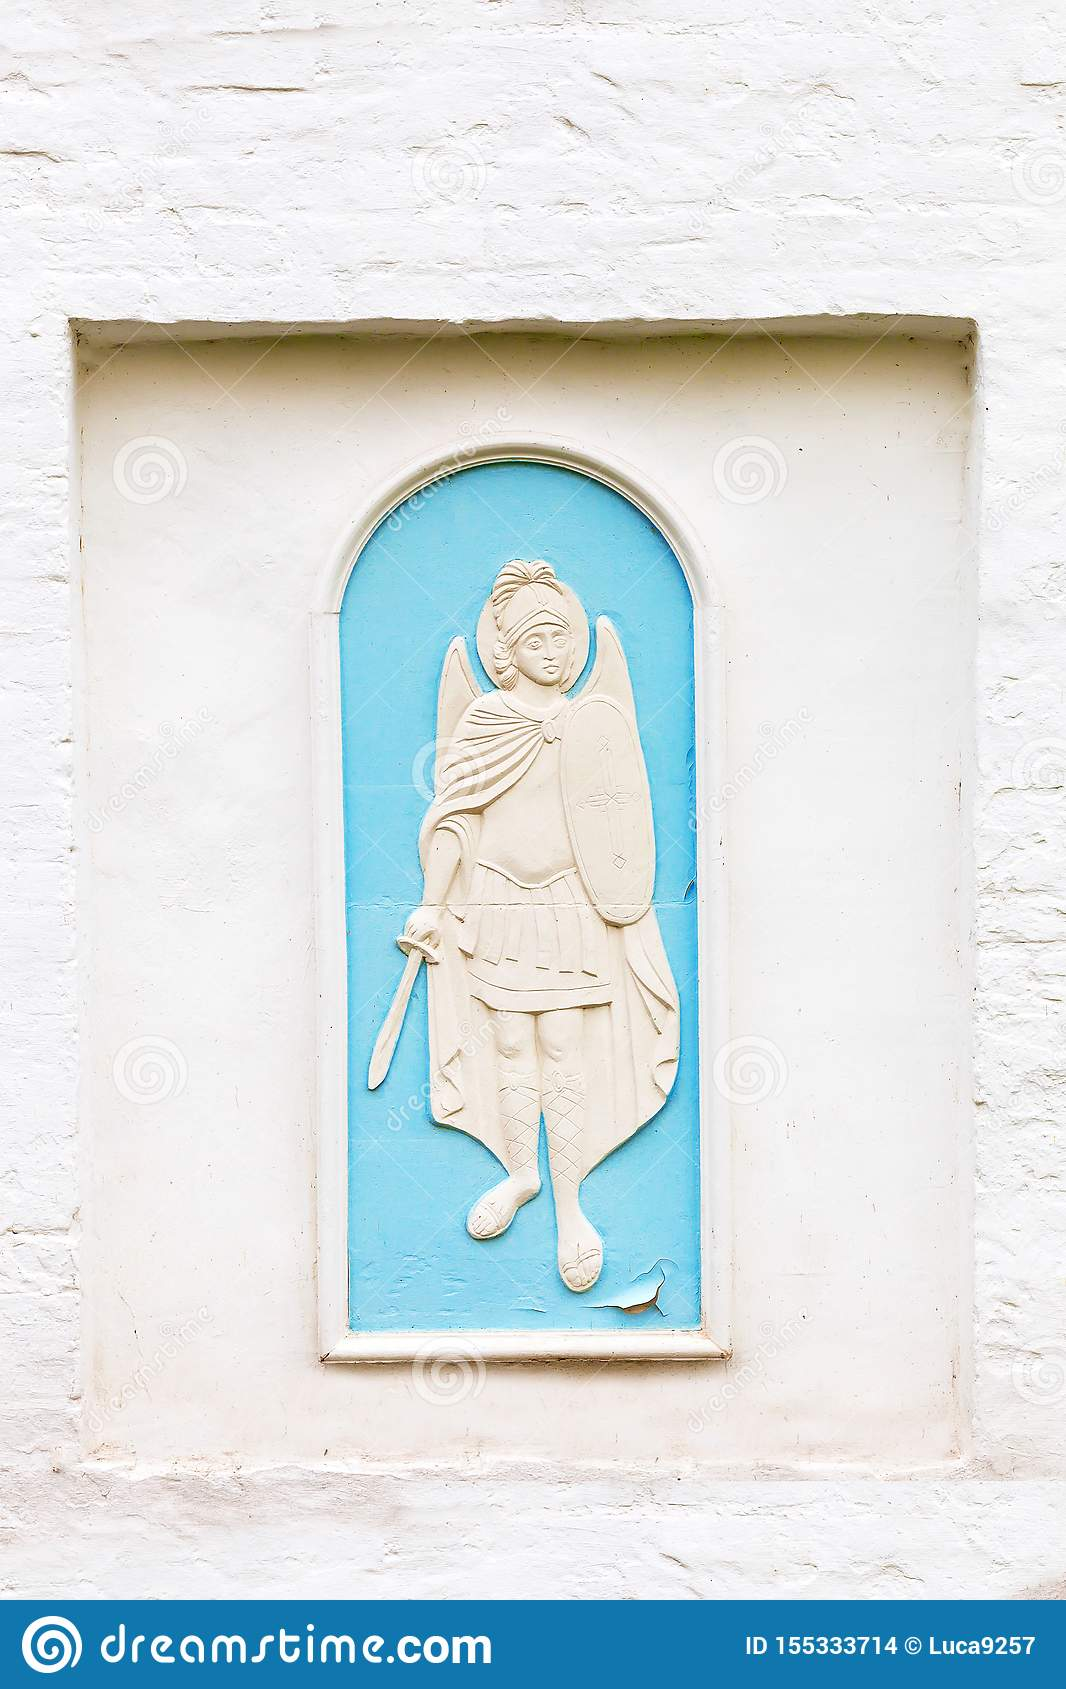 On an old white wall the relief of an angel